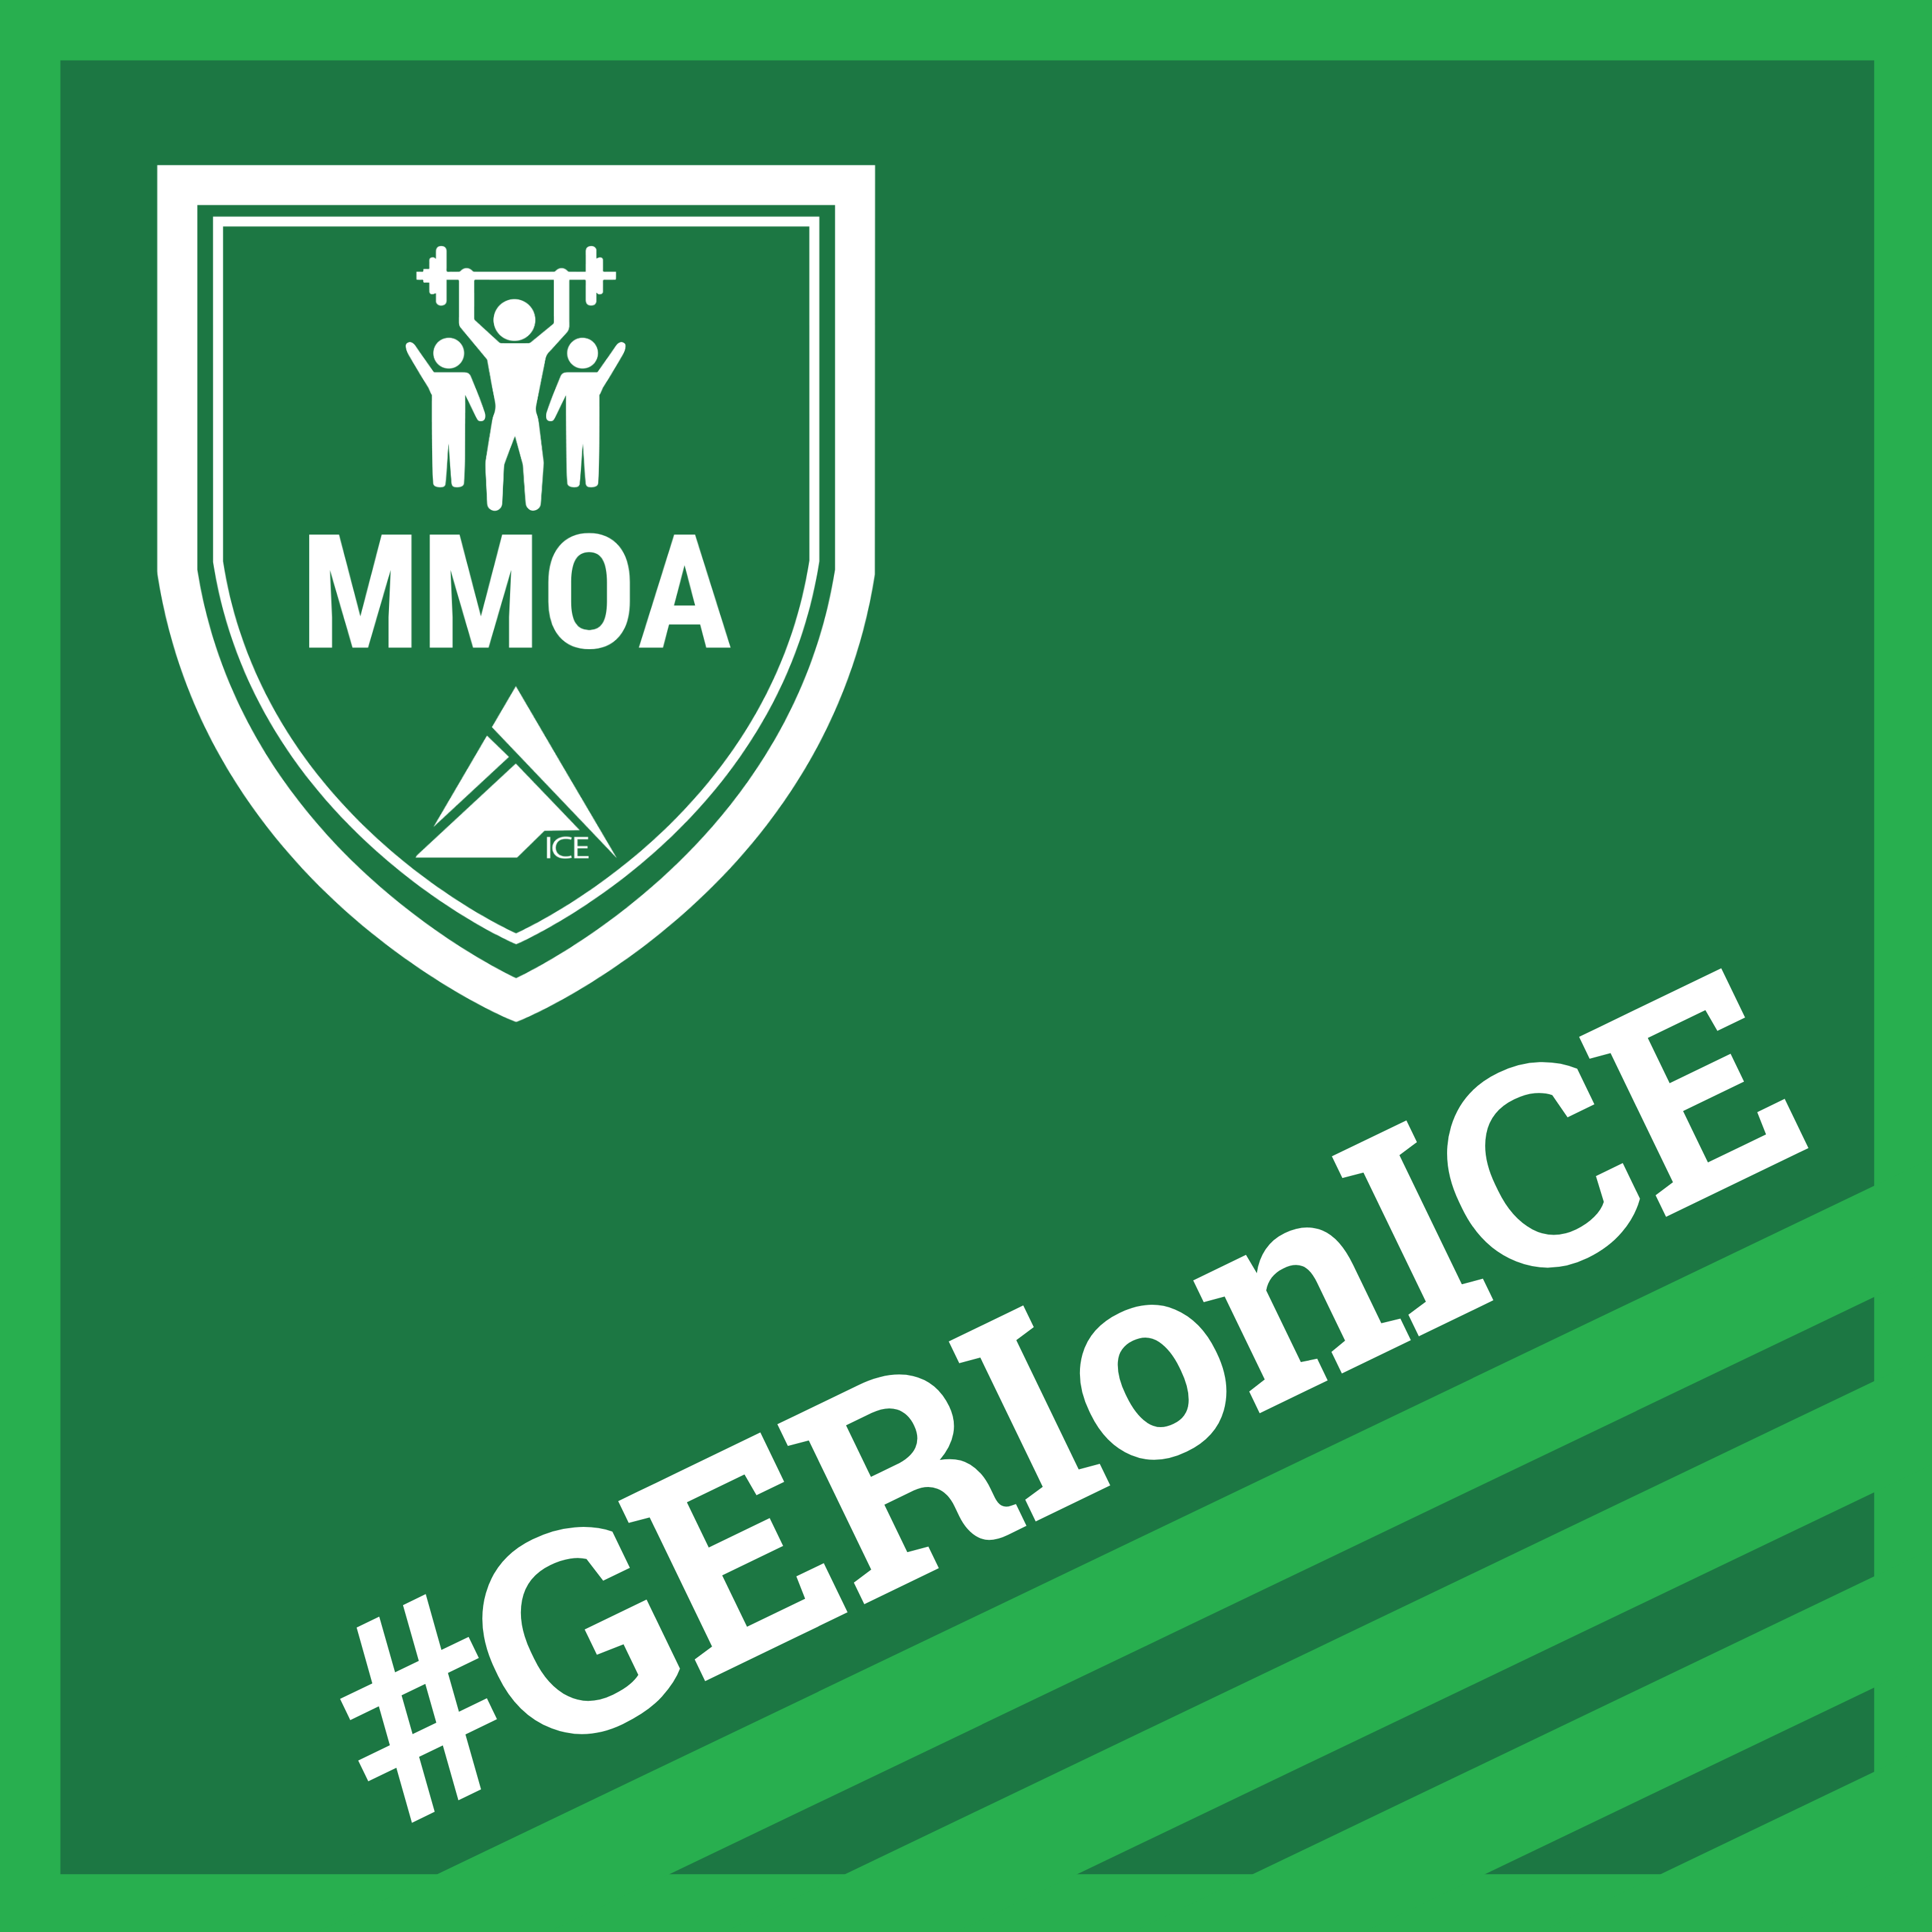 #GERIonICE - Physical Therapy | Fitness | Geriatrics